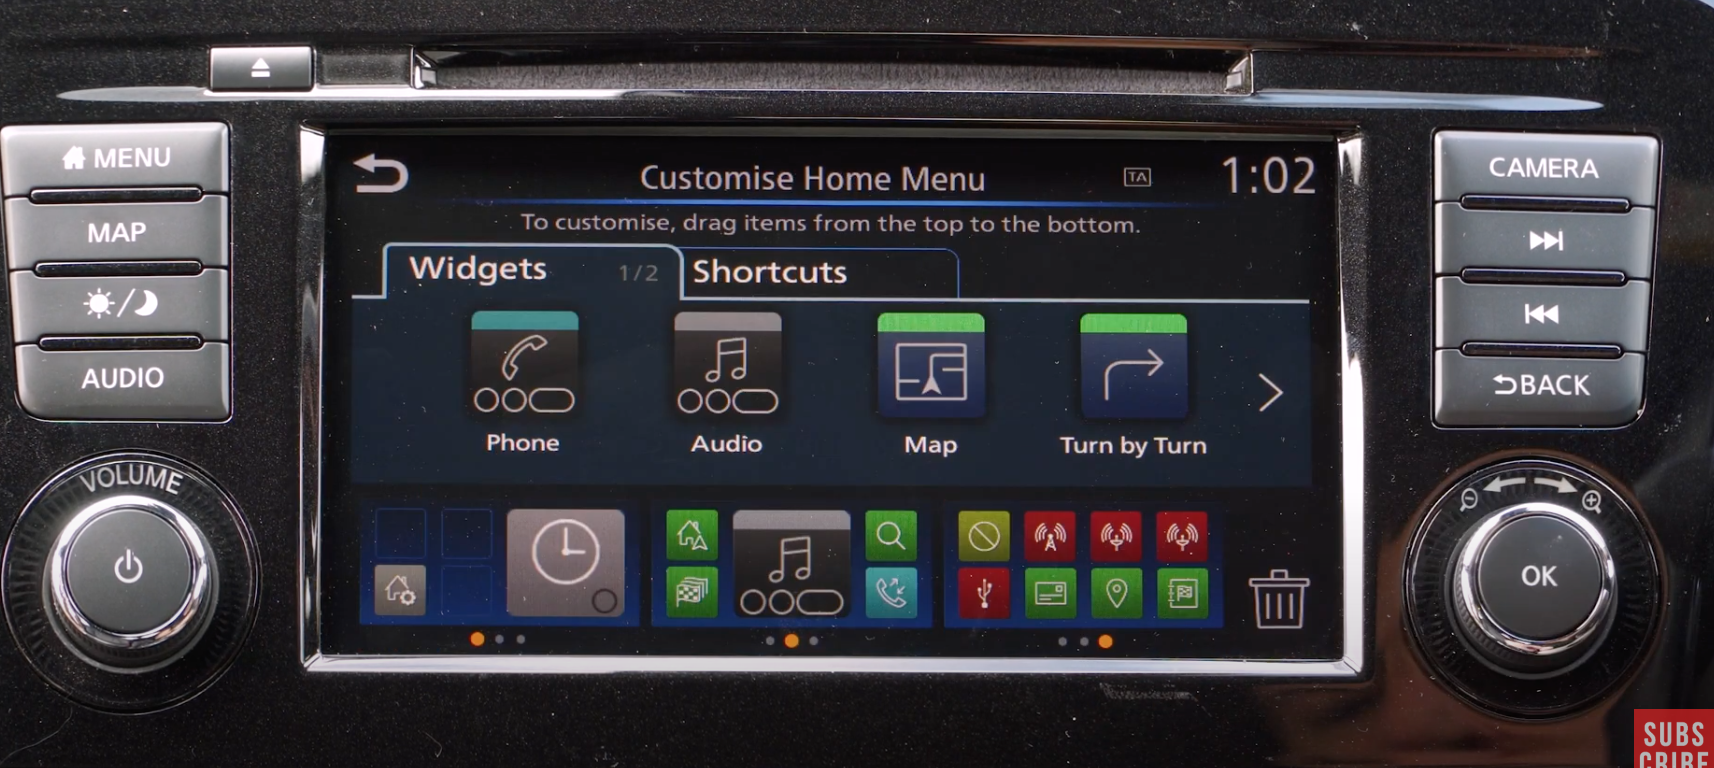 Customizing the home screen menu with selecting widgets and shortcuts